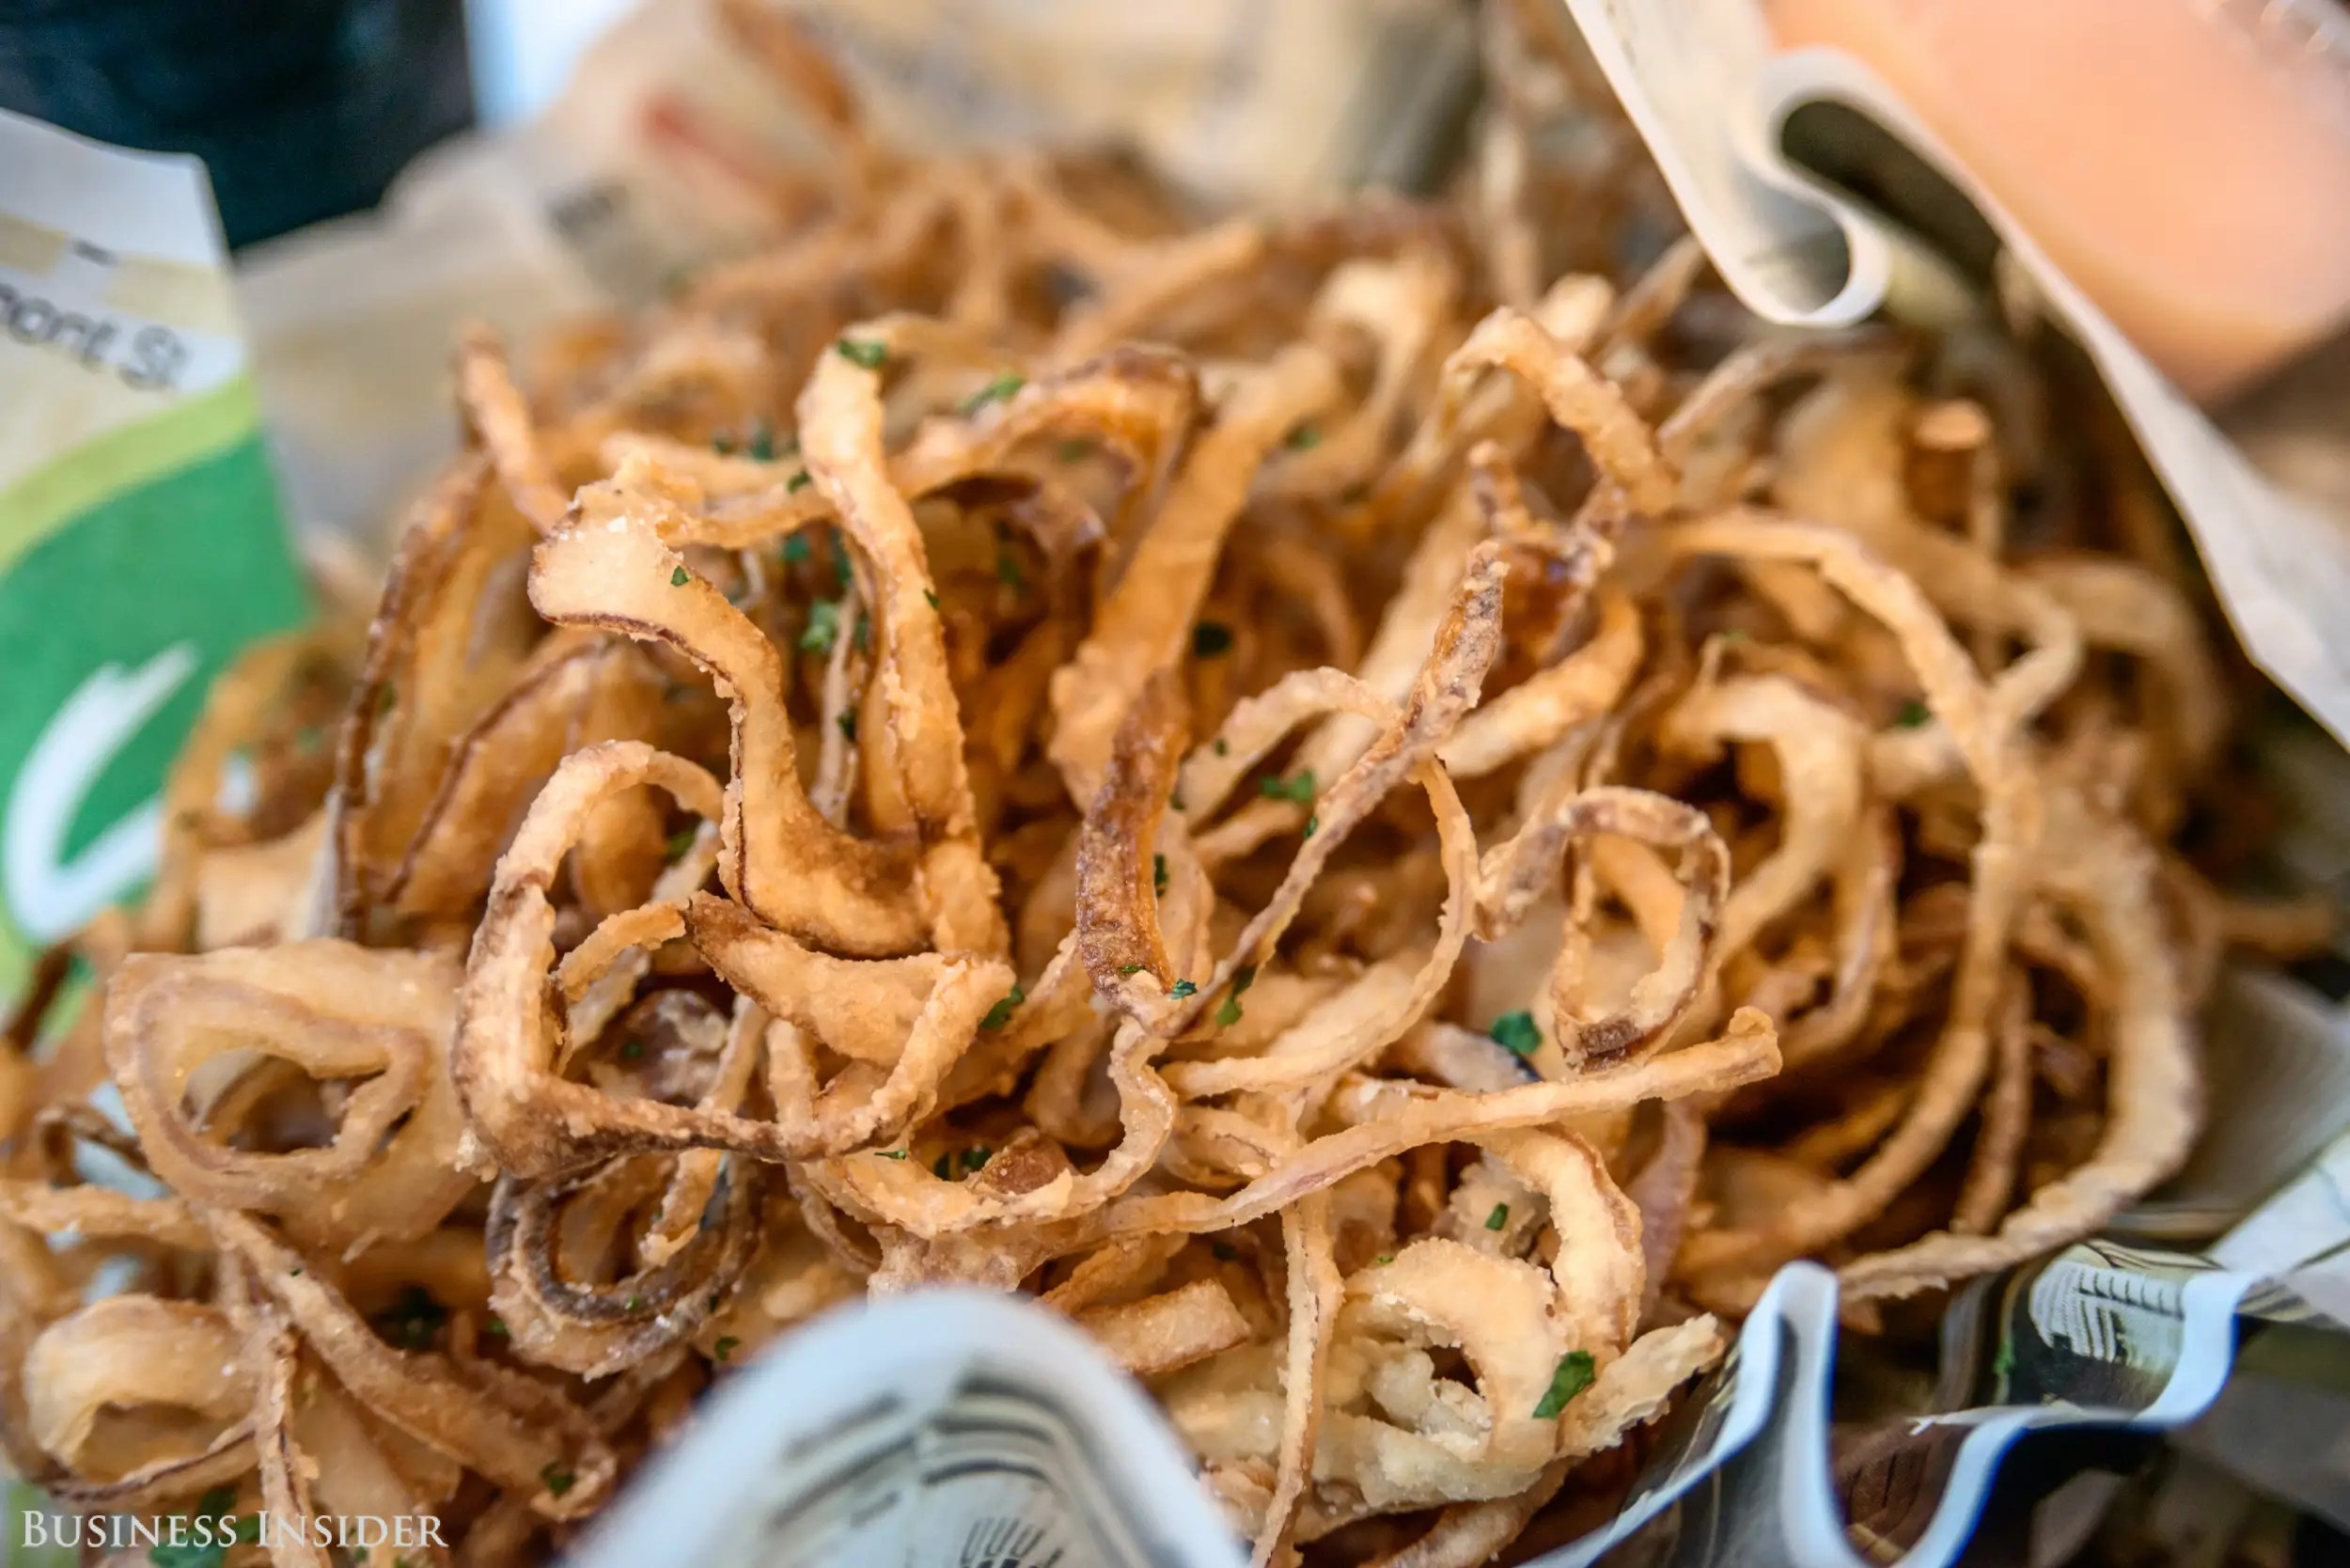 I press onward and start munching on the delicately crispy onion rings, priced at $3.50. They're not so much rings as they are fried onion threads – deliciously crispy and greasy. However, being so thin, they're incredibly difficult to eat and dip in any sauce. These rings are not in the realm of finger foods; rather, a fork is almost mandatory.